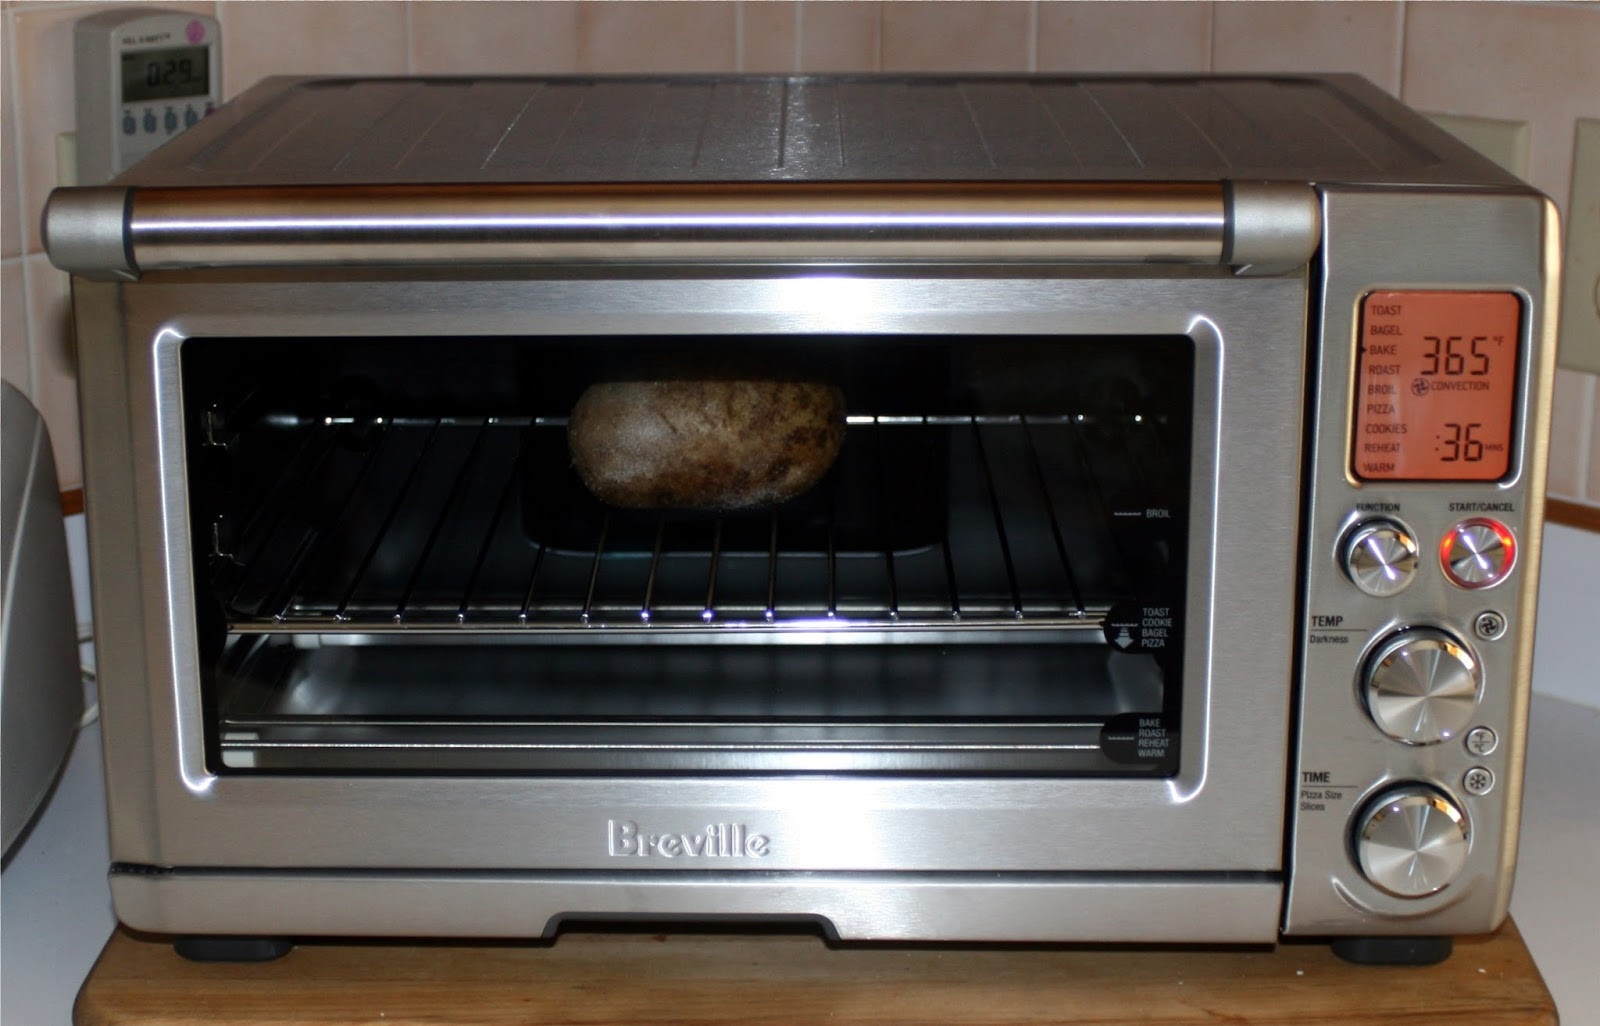 Baked Potato Convection Oven  Forsythkid A convection oven baked potato